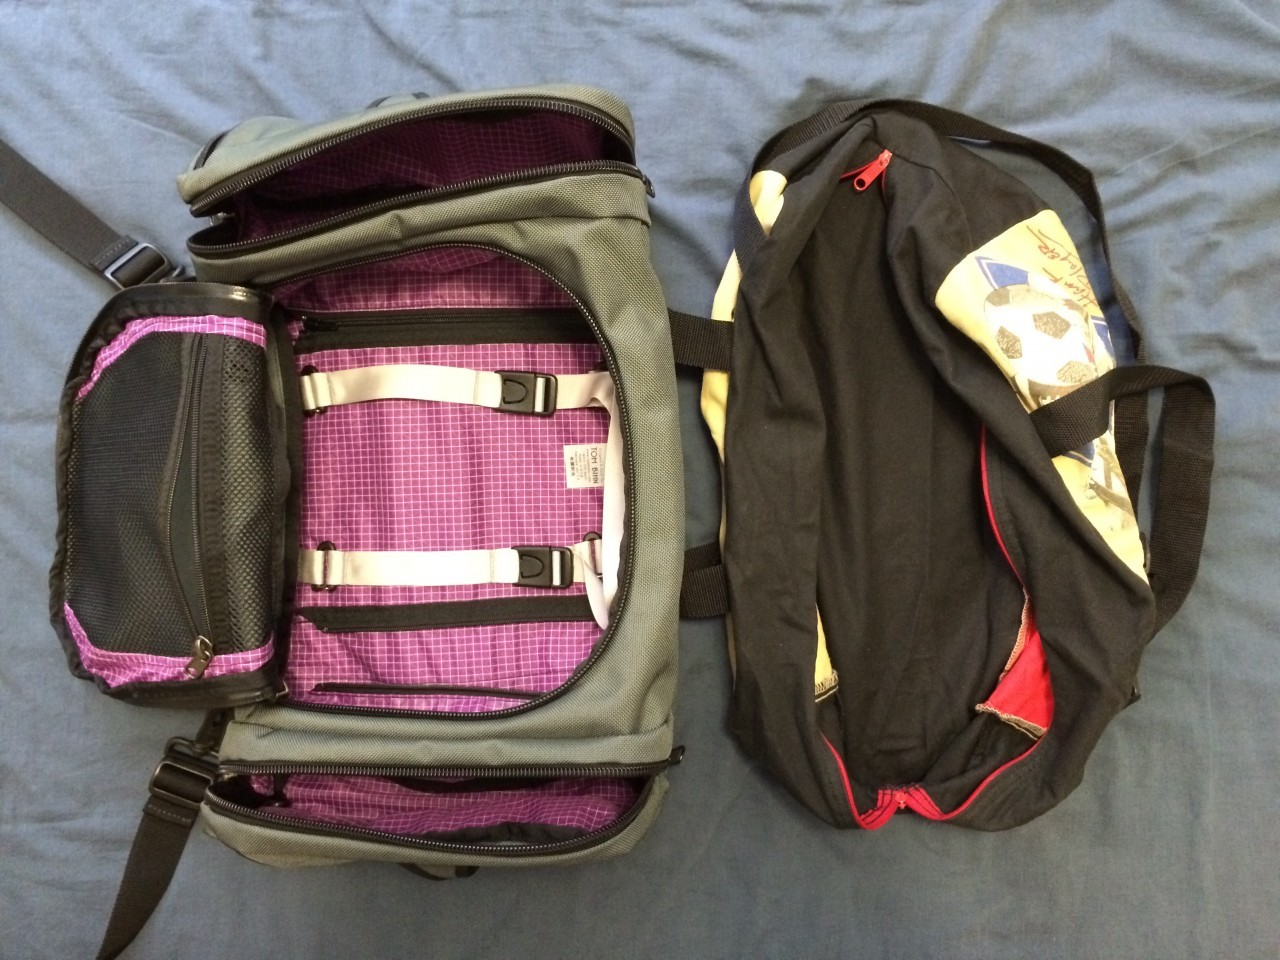 Duffel bags layout comparison